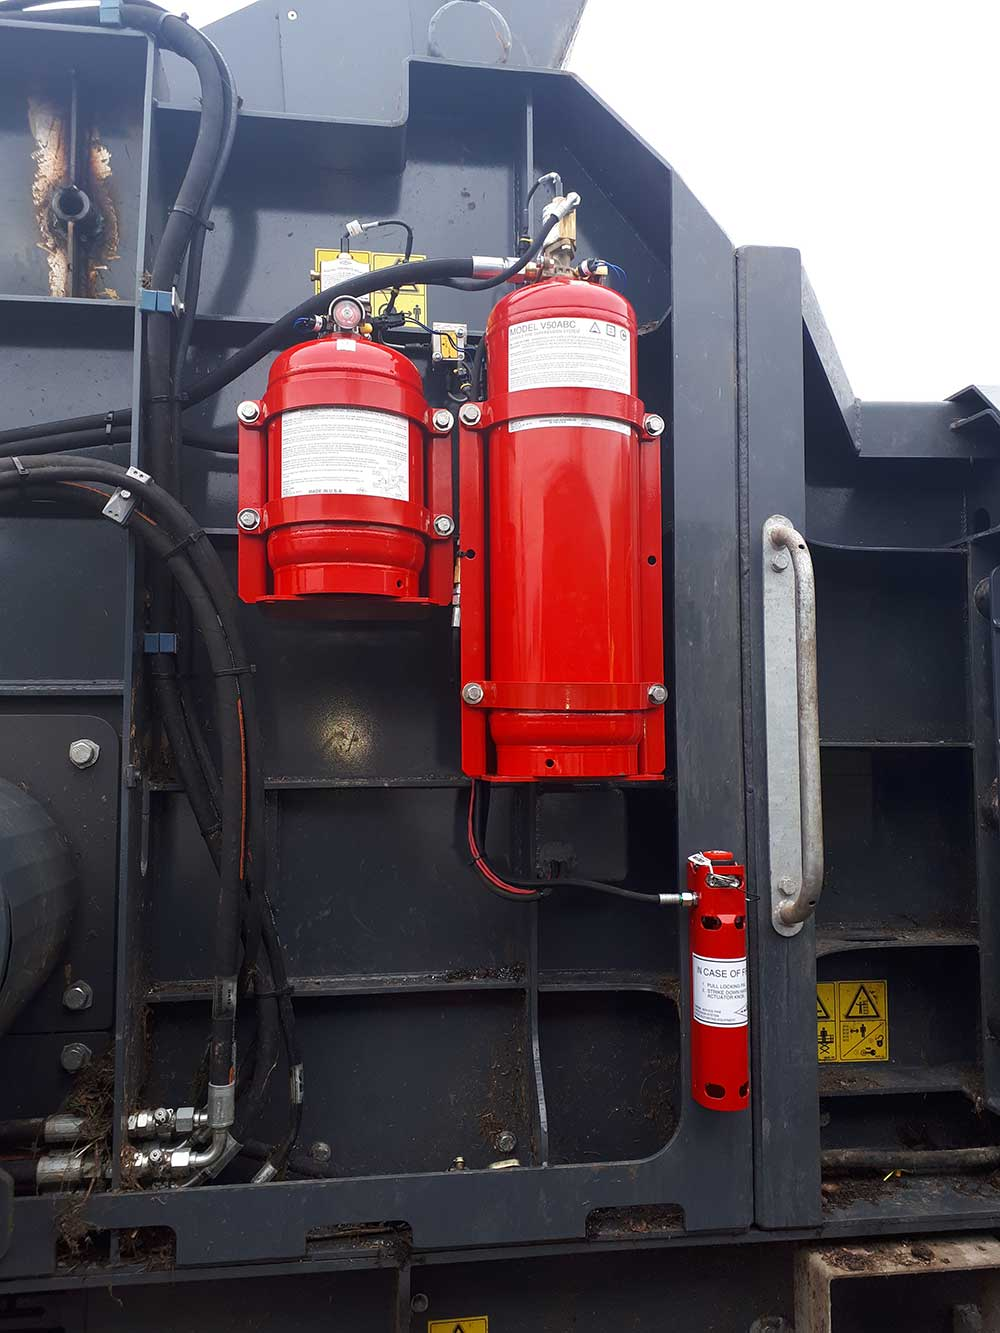 Vehicle Fire suppression system tanks